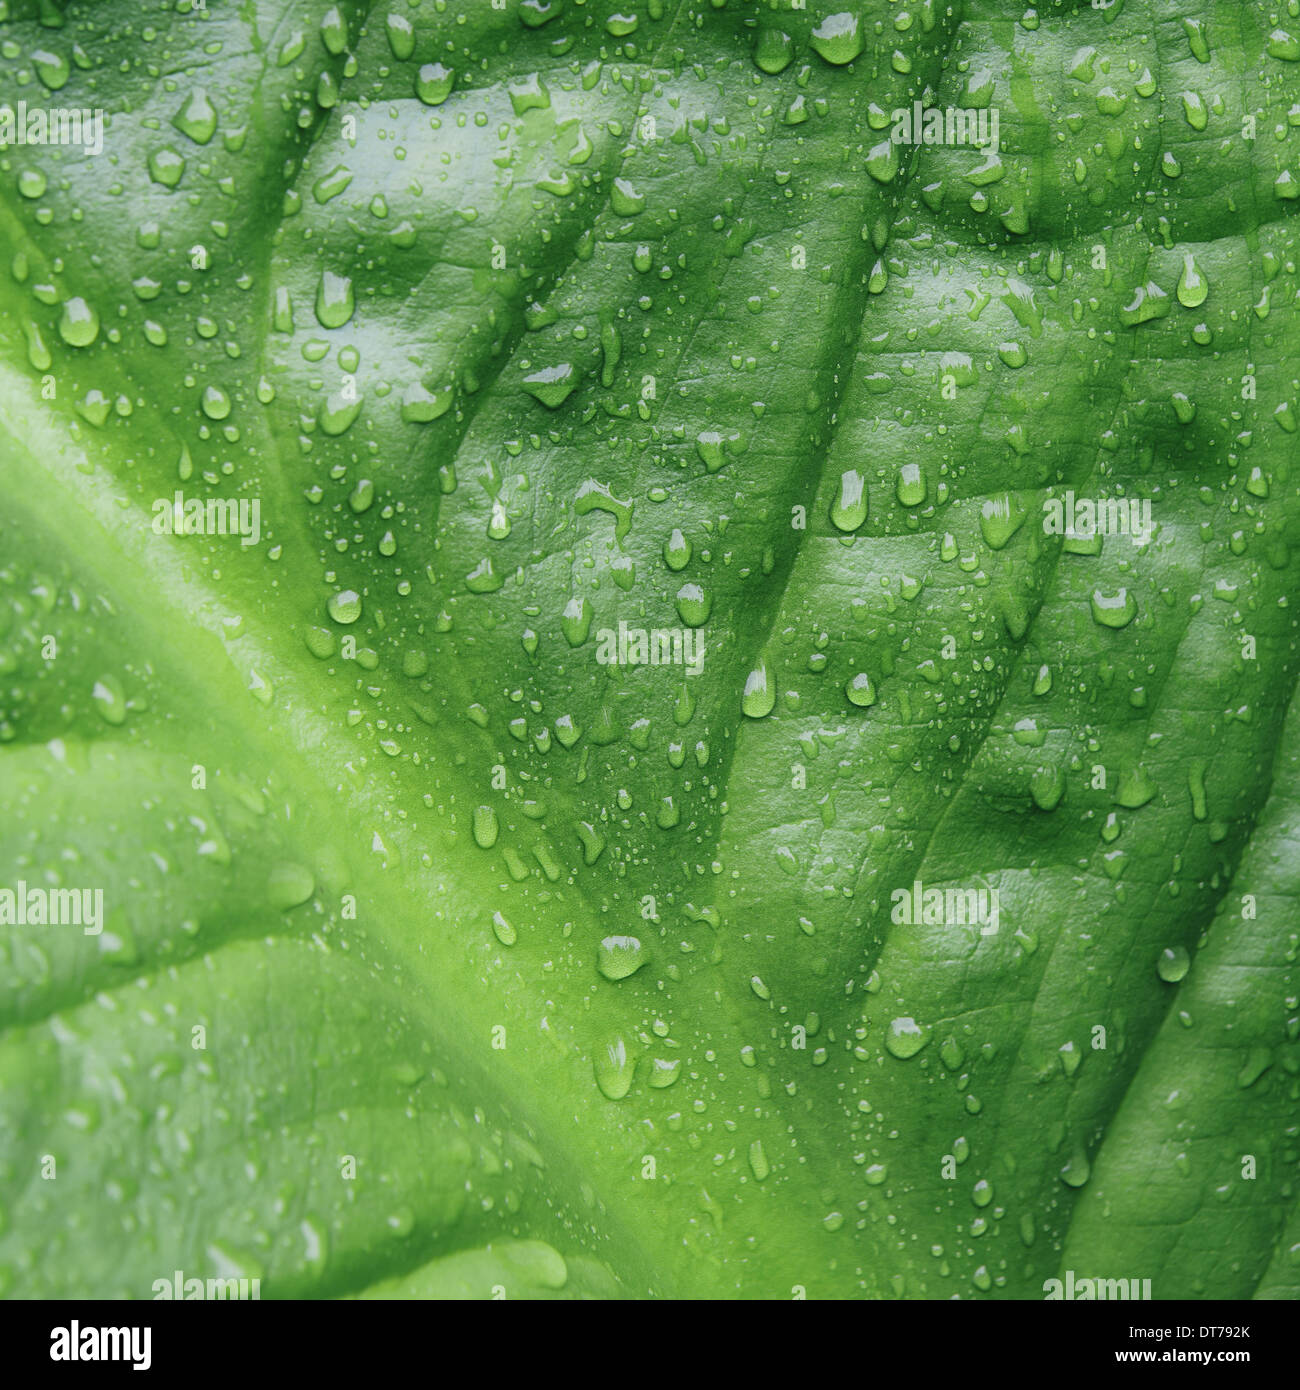 Close up of water drops on lush, green Skunk cabbage leaves (Lysichiton americanus), Hoh Rainforest, Olympic NP Stock Photo